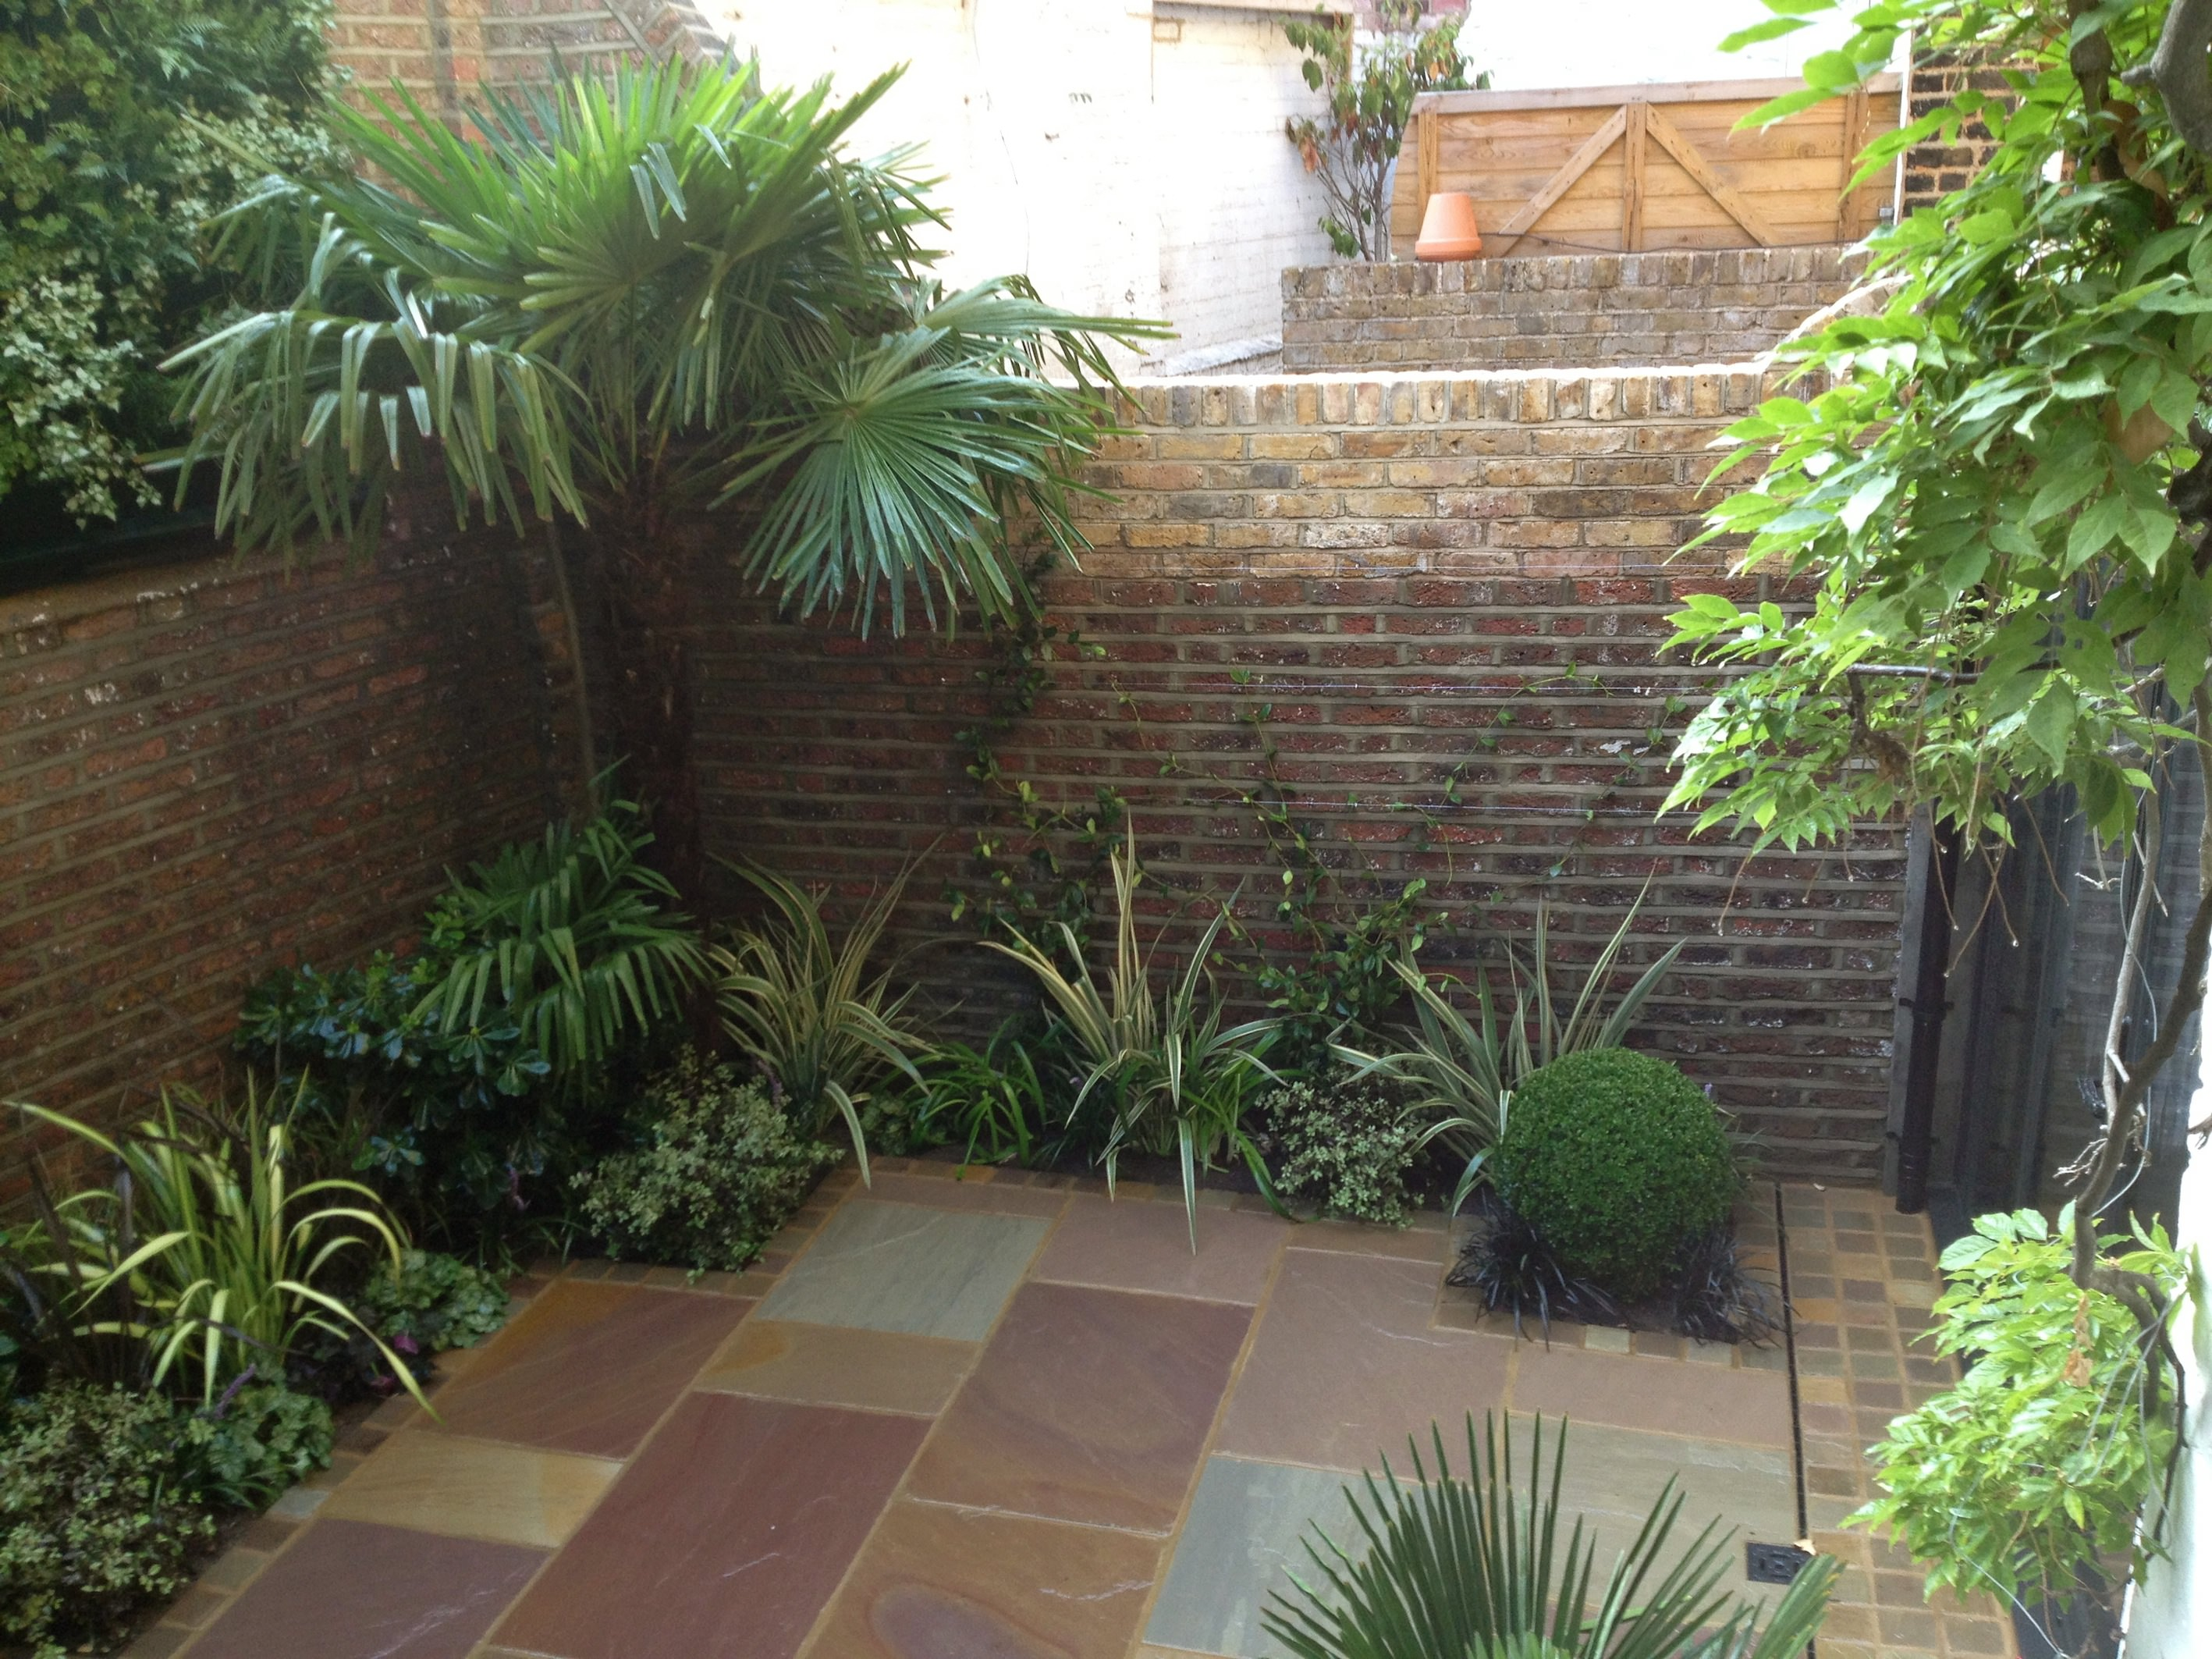 Low maintenance garden designs garden club london for Large low maintenance garden